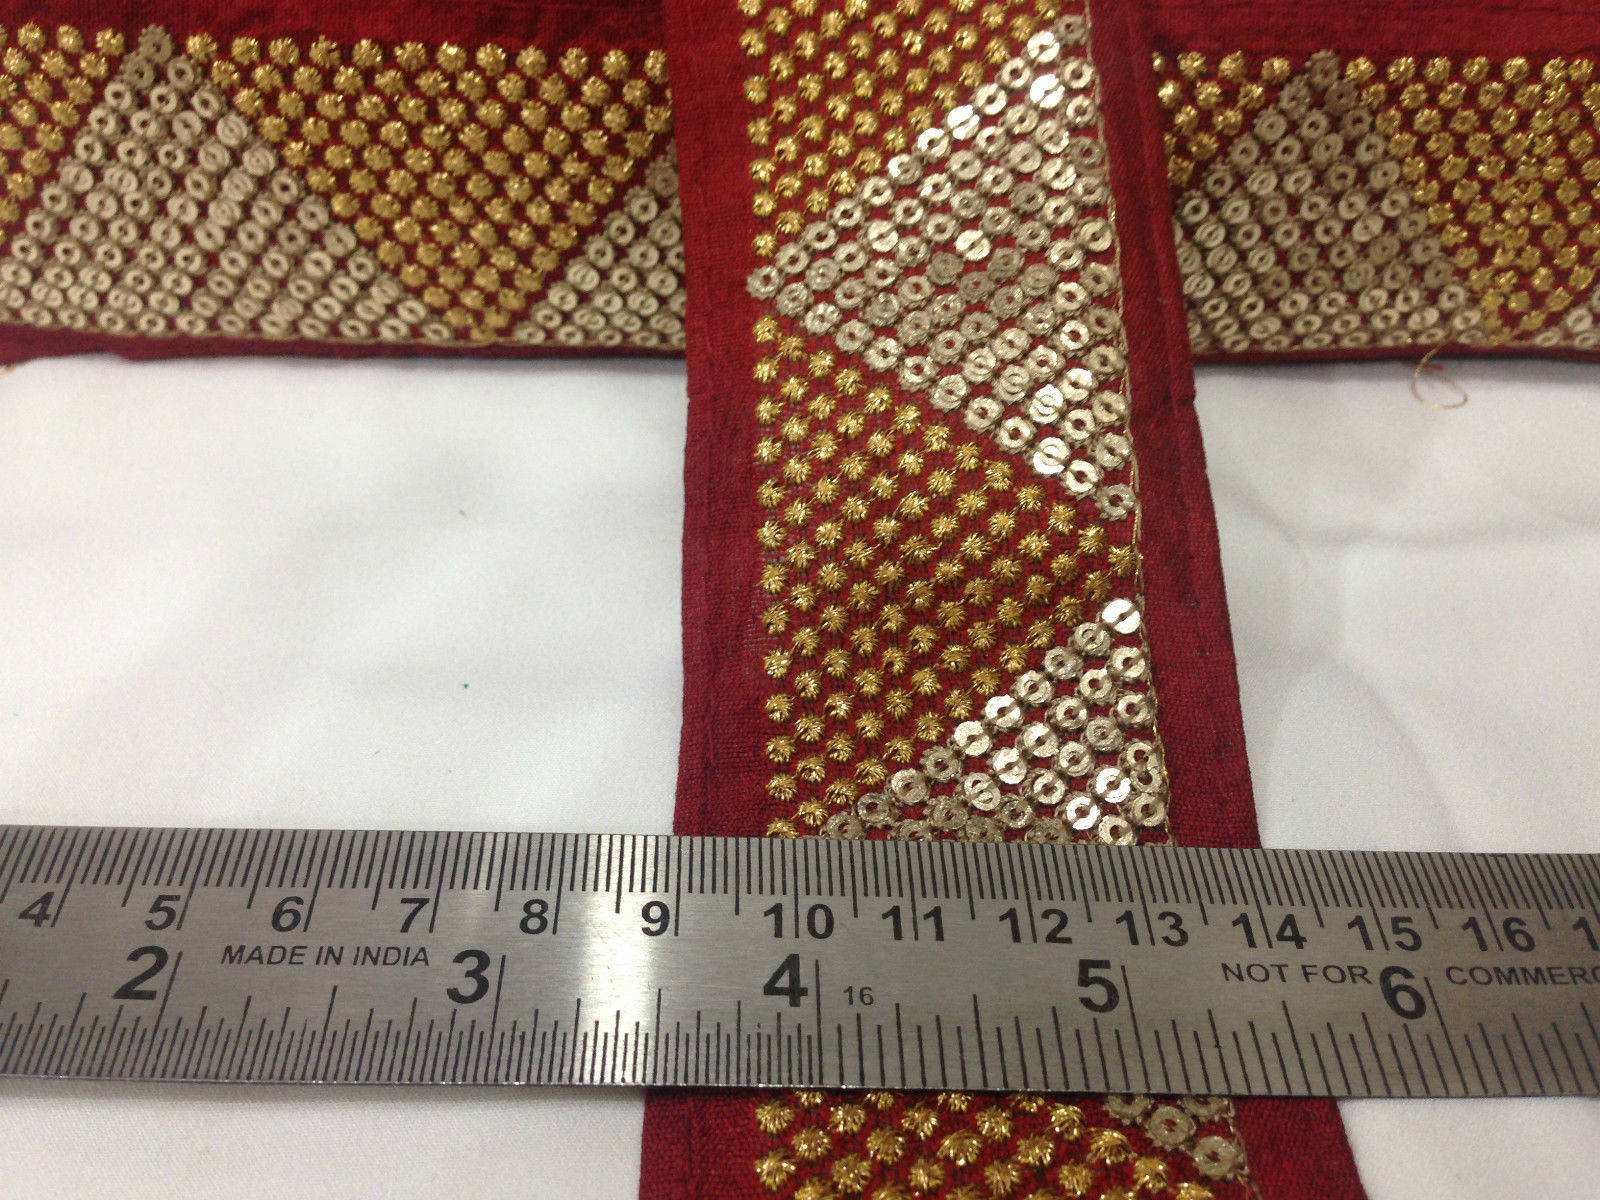 wholesale fabric trim suppliers border lace for sale Pink Baby Pink, Gold Embroidery Shinny Sturdy Fabric Less than 2 inch